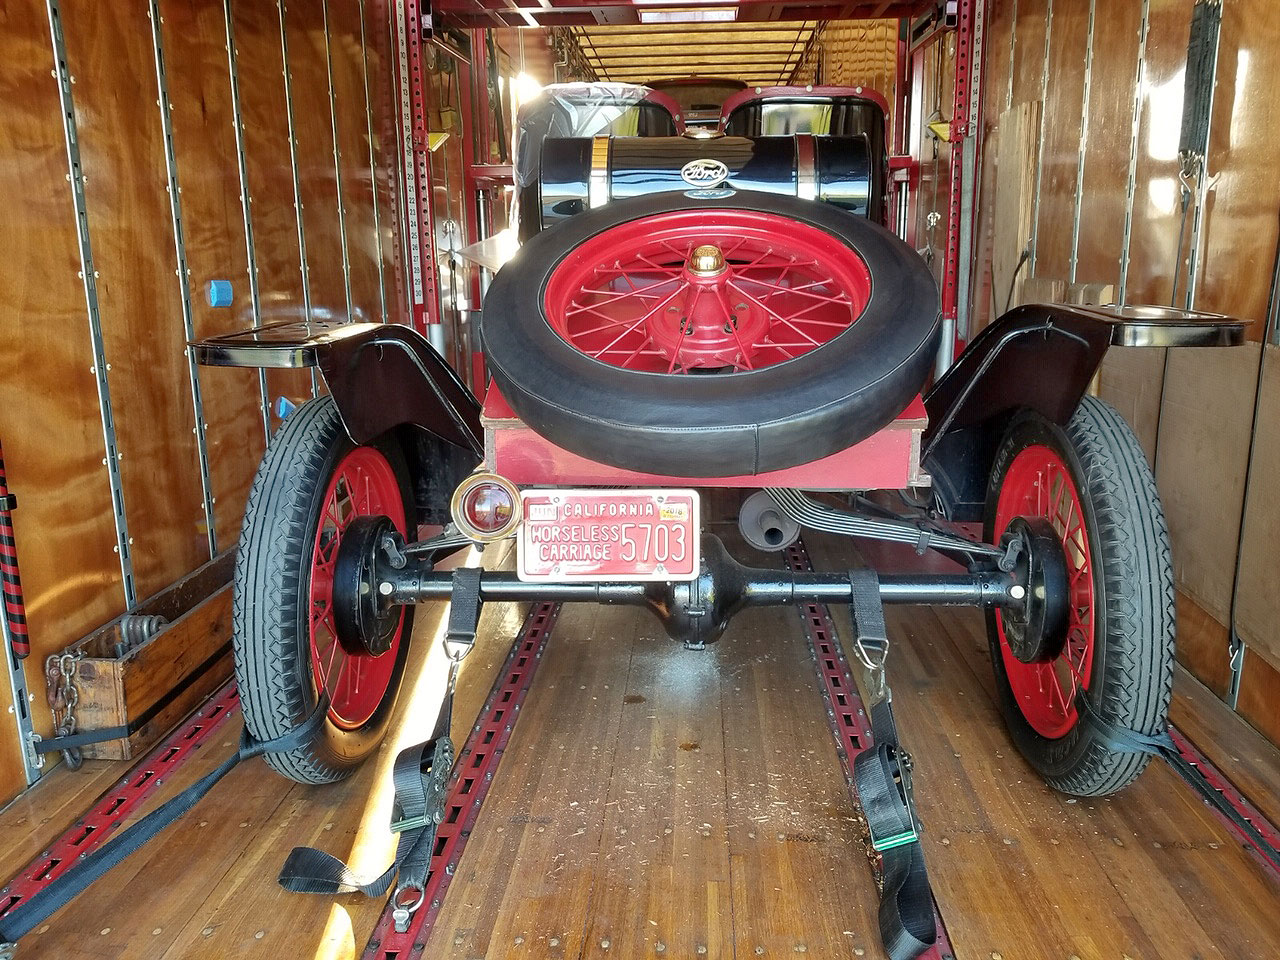 horseless-carriage-carriers-antique-classic-luxury-vehicle-auto-transportation-shipping-28